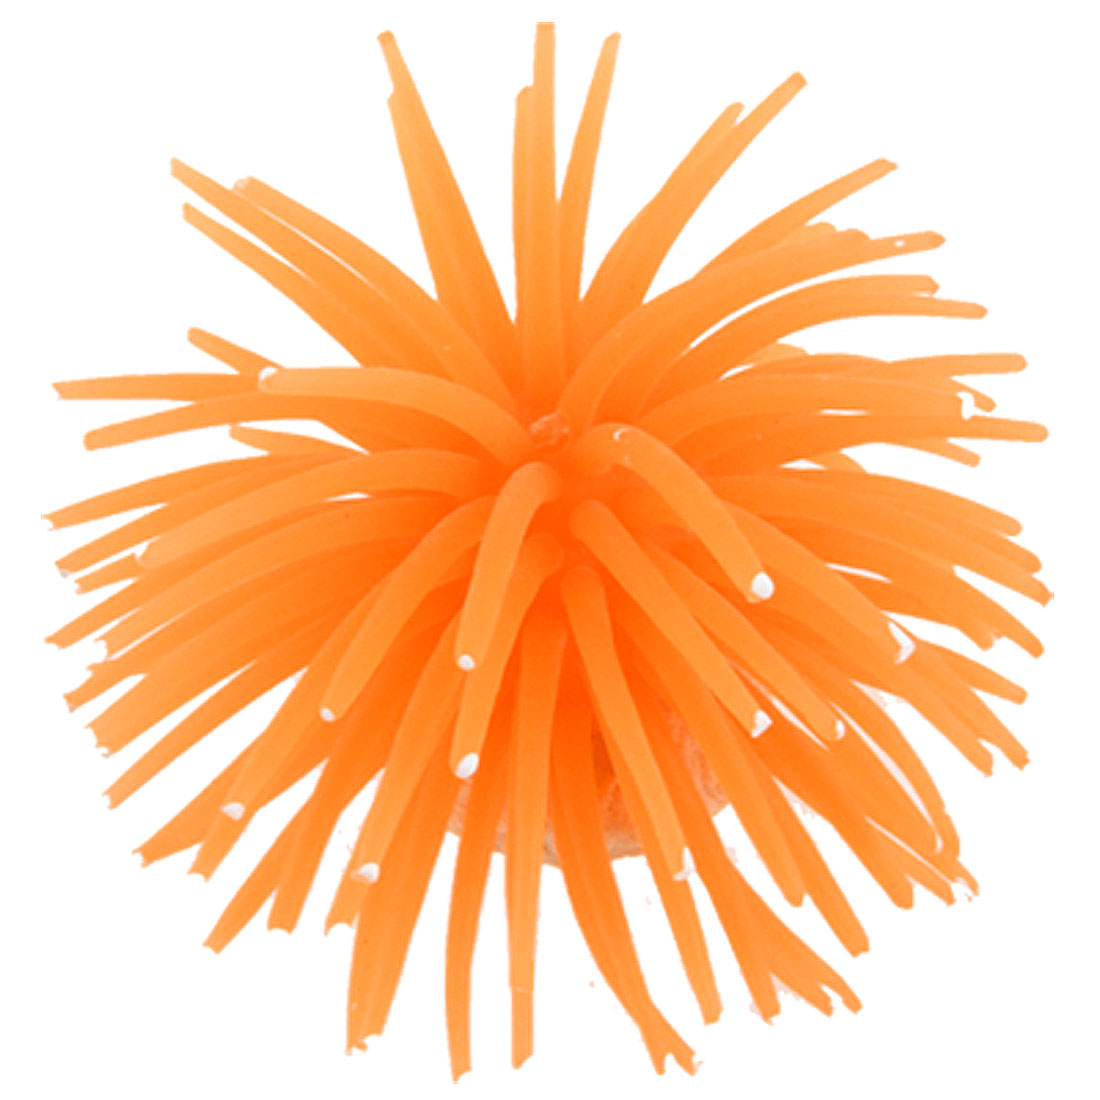 "Aquarium Orange 3"" Dia Soft Silicone Sea Urchin Landscaping Ornament"